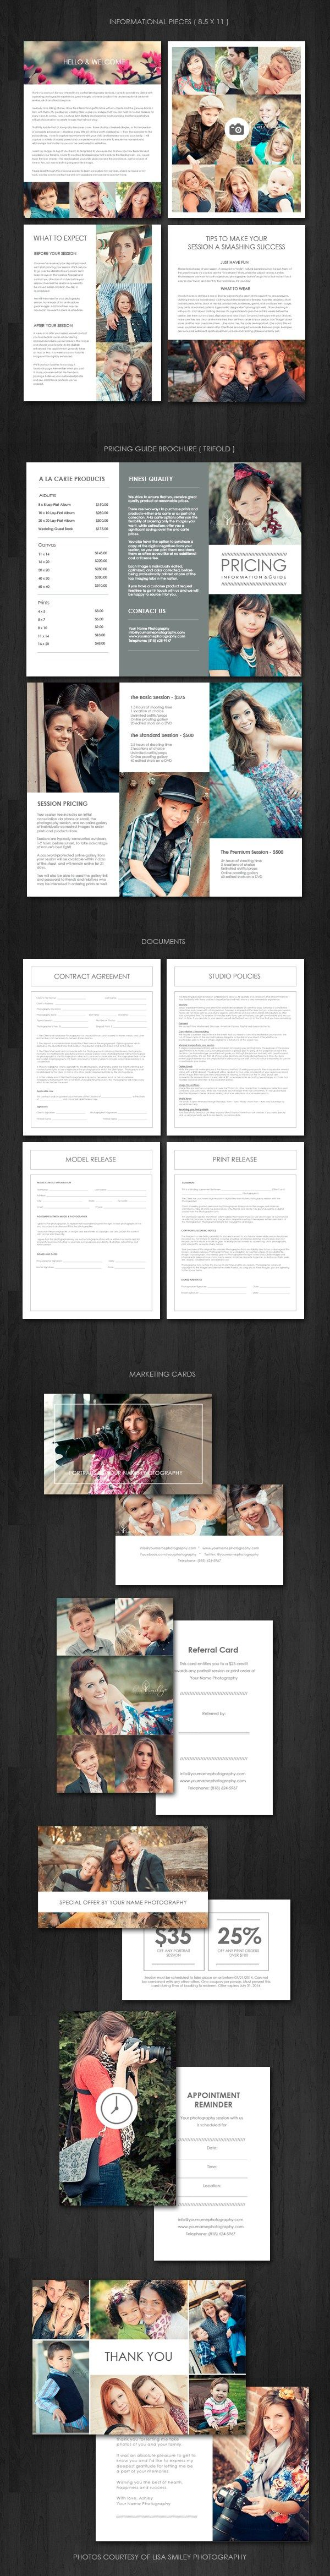 The Ultimate Portrait Photography Marketing Kit - Welcome Packet Templates -                                                                                                                                                                                 More